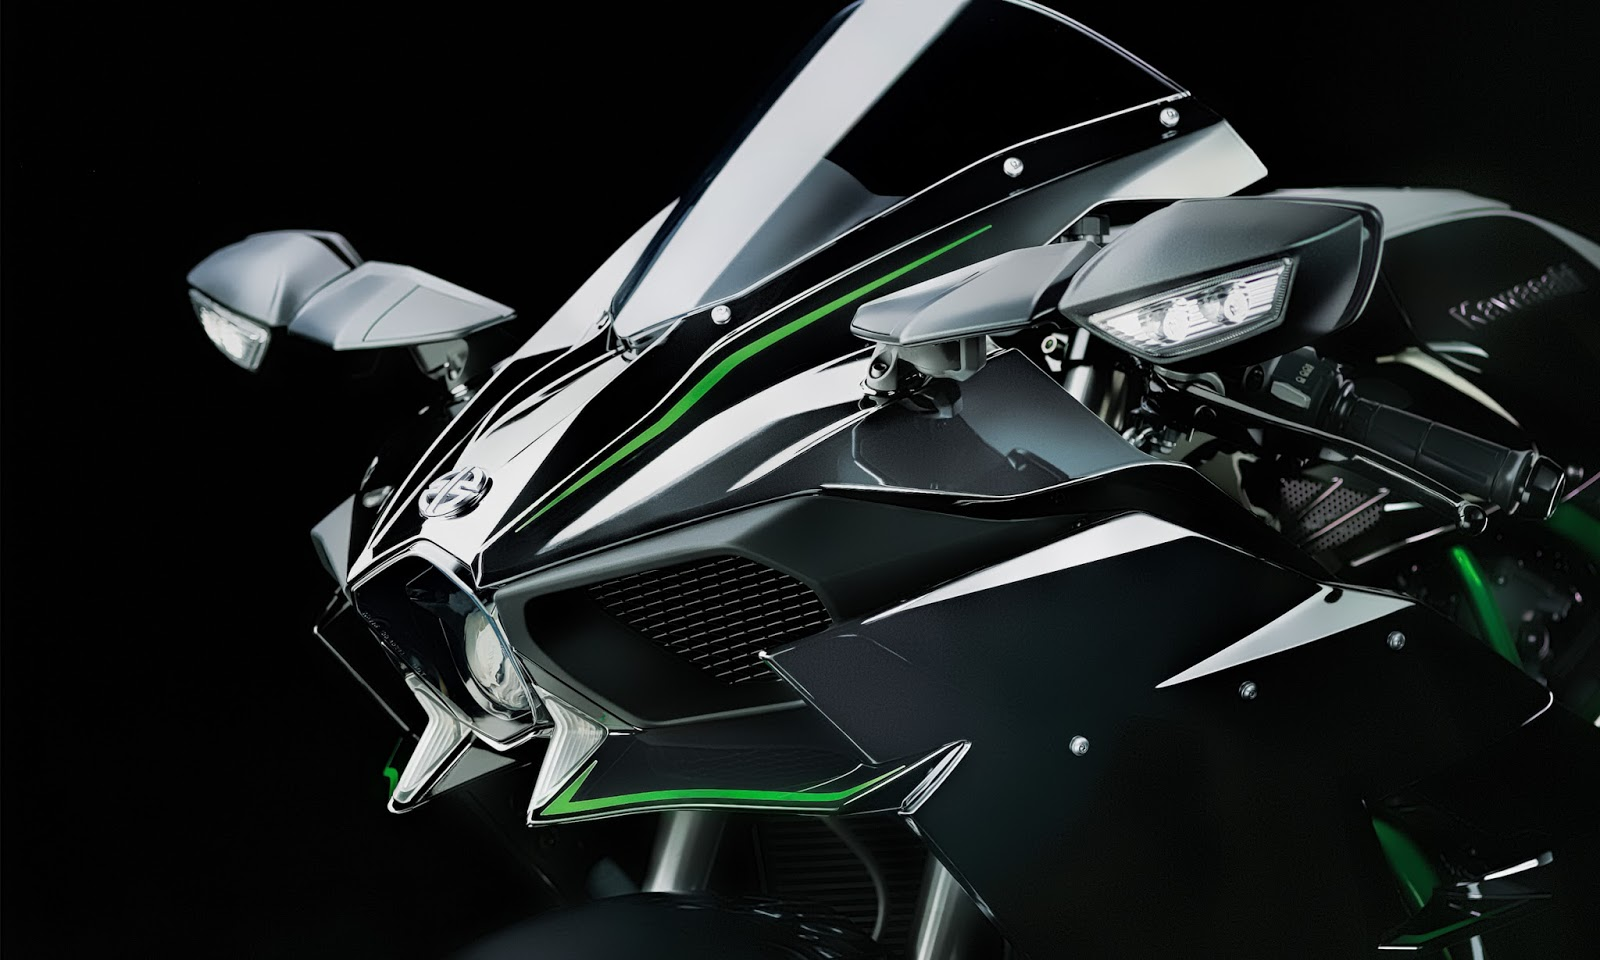 Kawasaki Ninja H2R HD Wallpapers | HD Wallpapers (High Definition ...